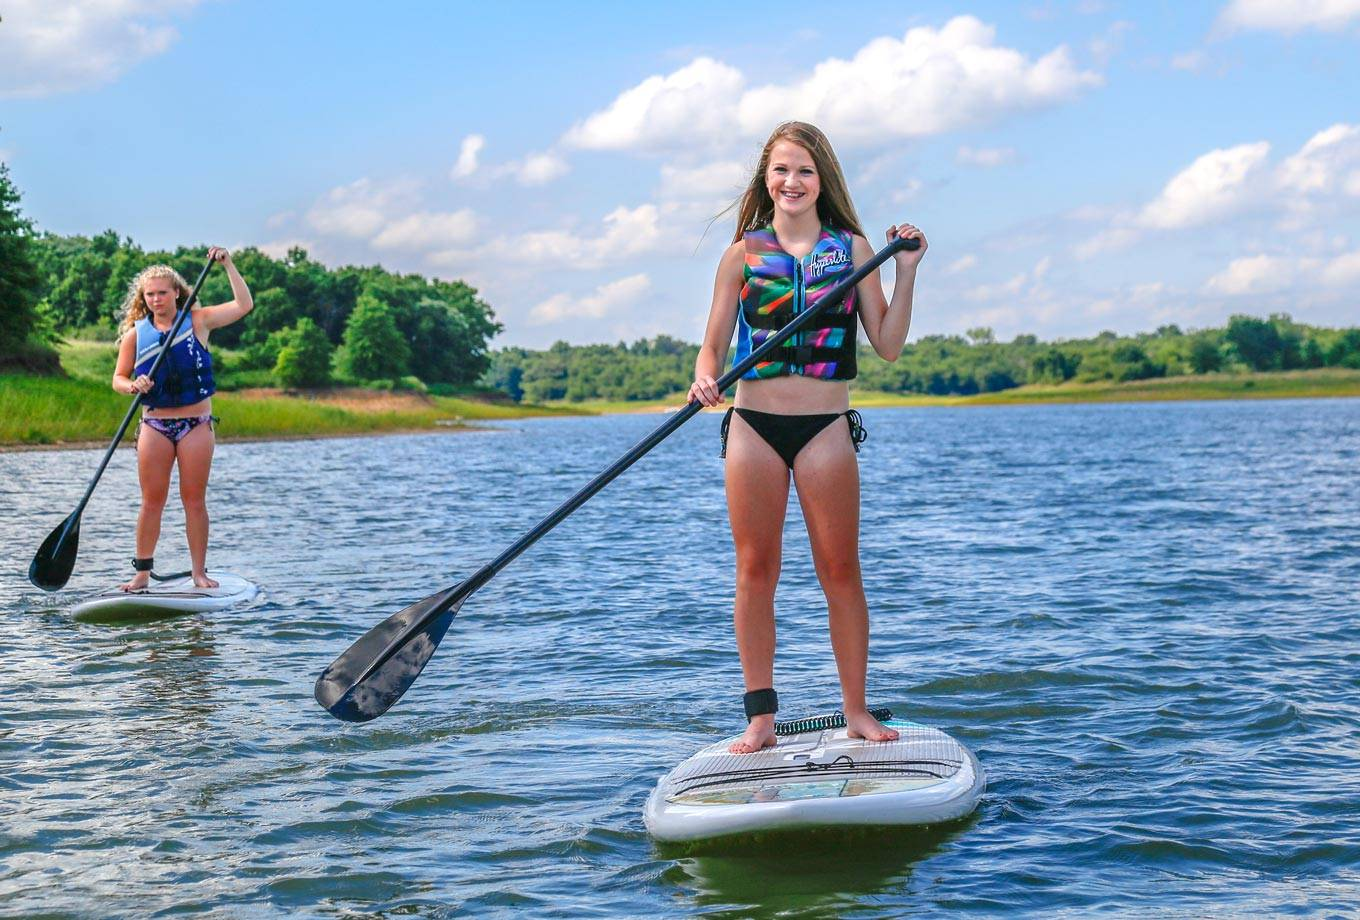 Girls enjoy stand-up paddleboarding on Rathbun Lake with SUP rentals from Honey Creek Resort